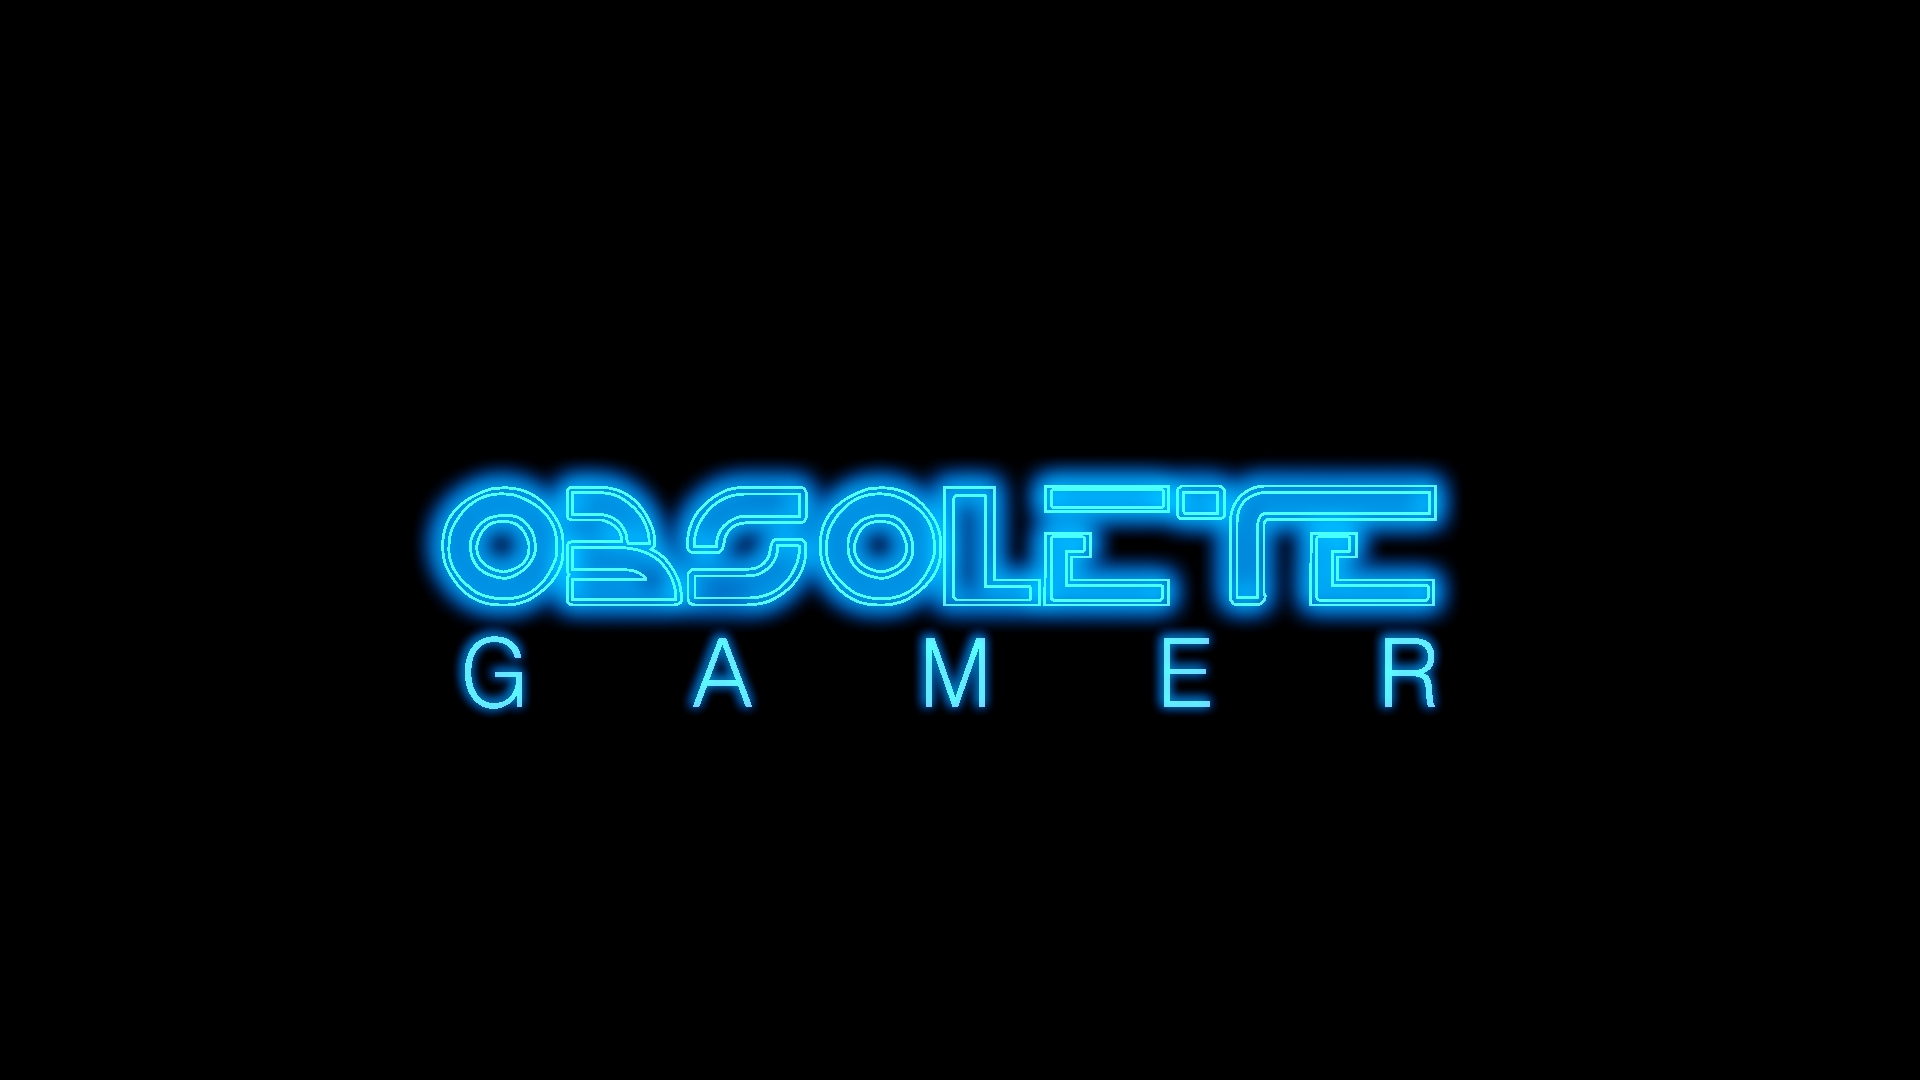 obsolete gamer logo